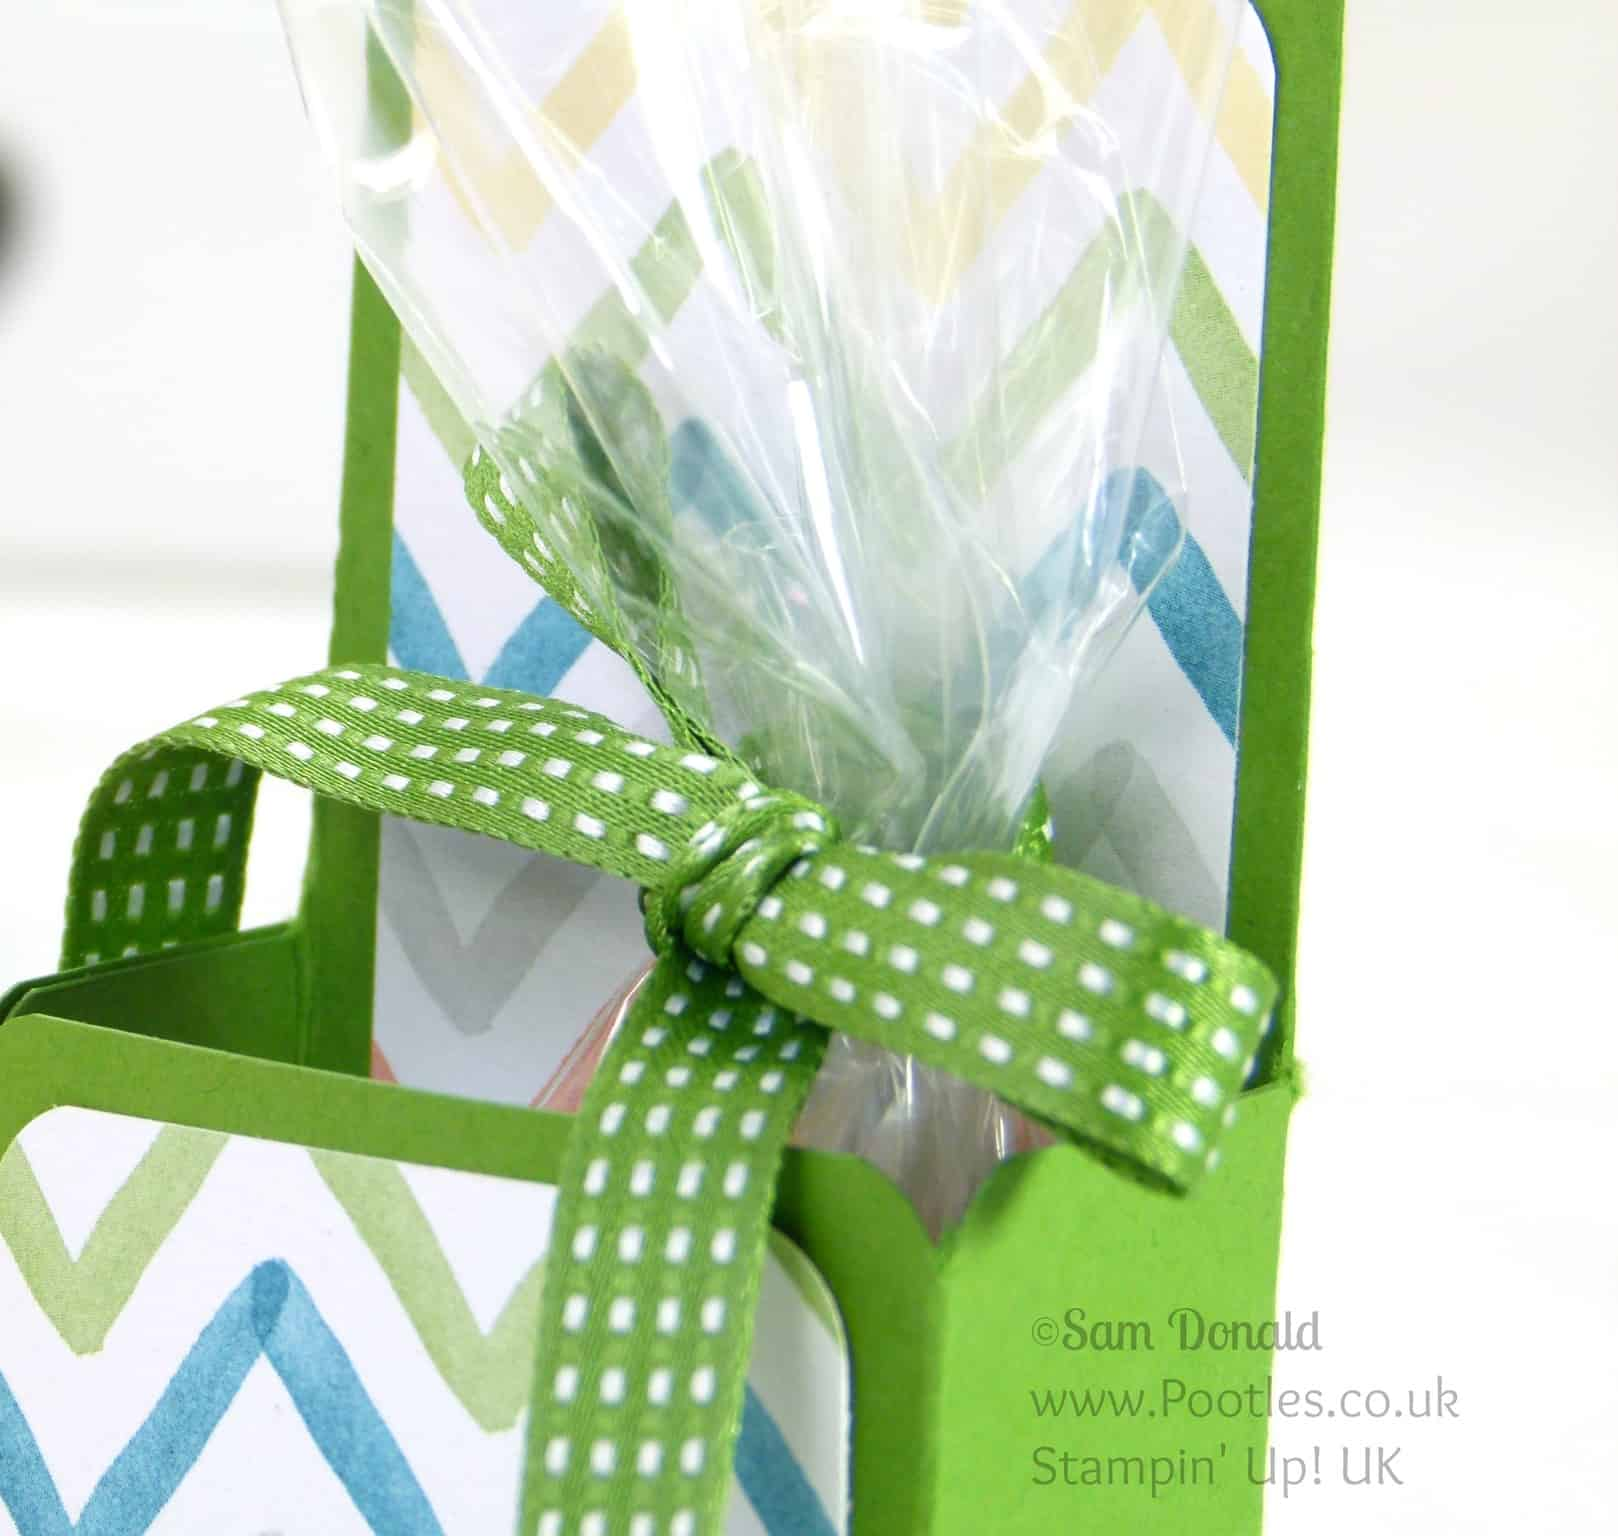 Stampin' Up! UK Upstanding Treat Box Ribbon Detail